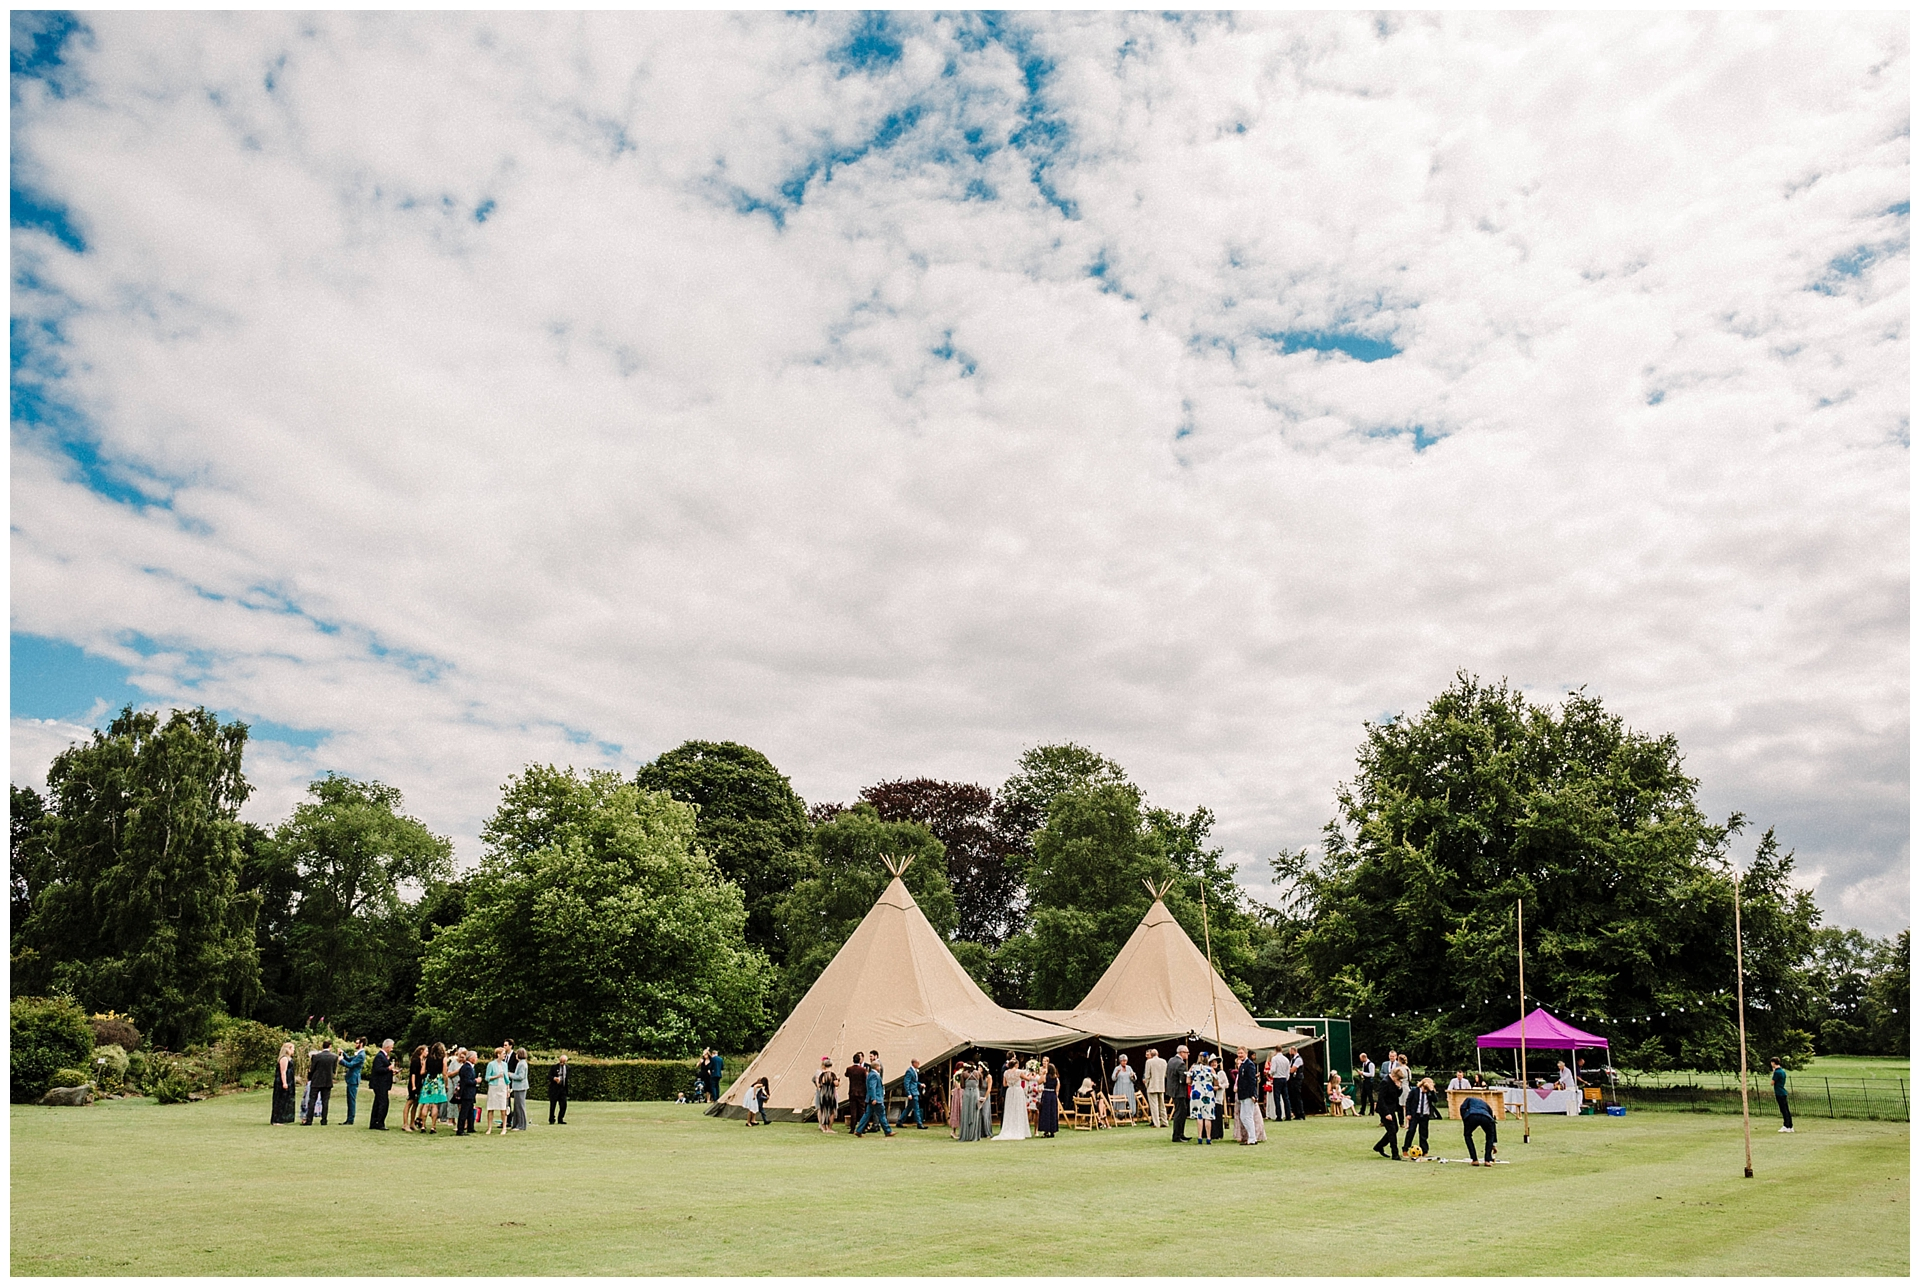 Wedding guests outside a tipi in the garden at Scampston Hall